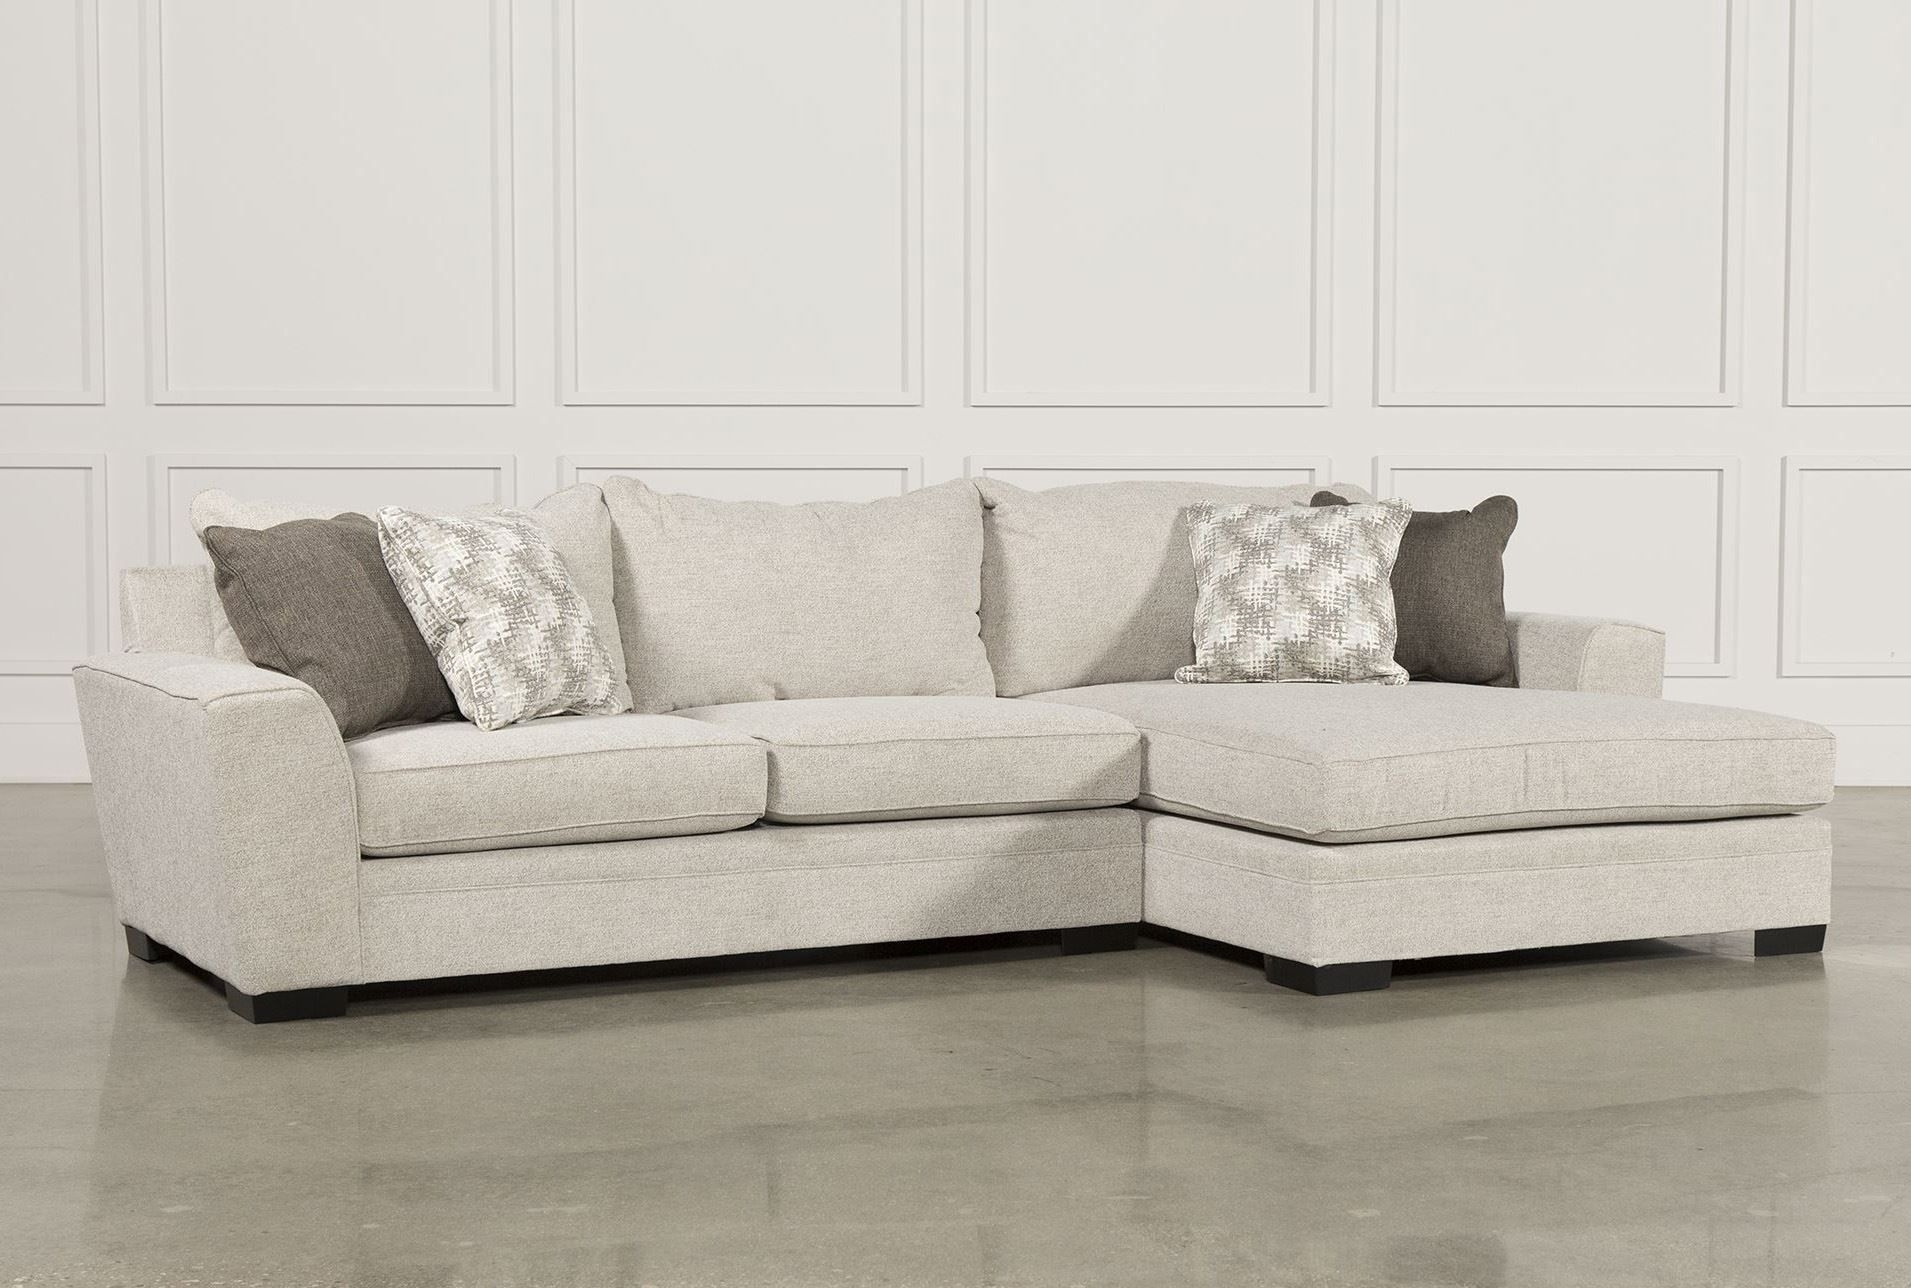 Delano 2 Piece Sectional W/raf Oversized Chaise | New Home Inside Delano 2 Piece Sectionals With Laf Oversized Chaise (Image 13 of 25)